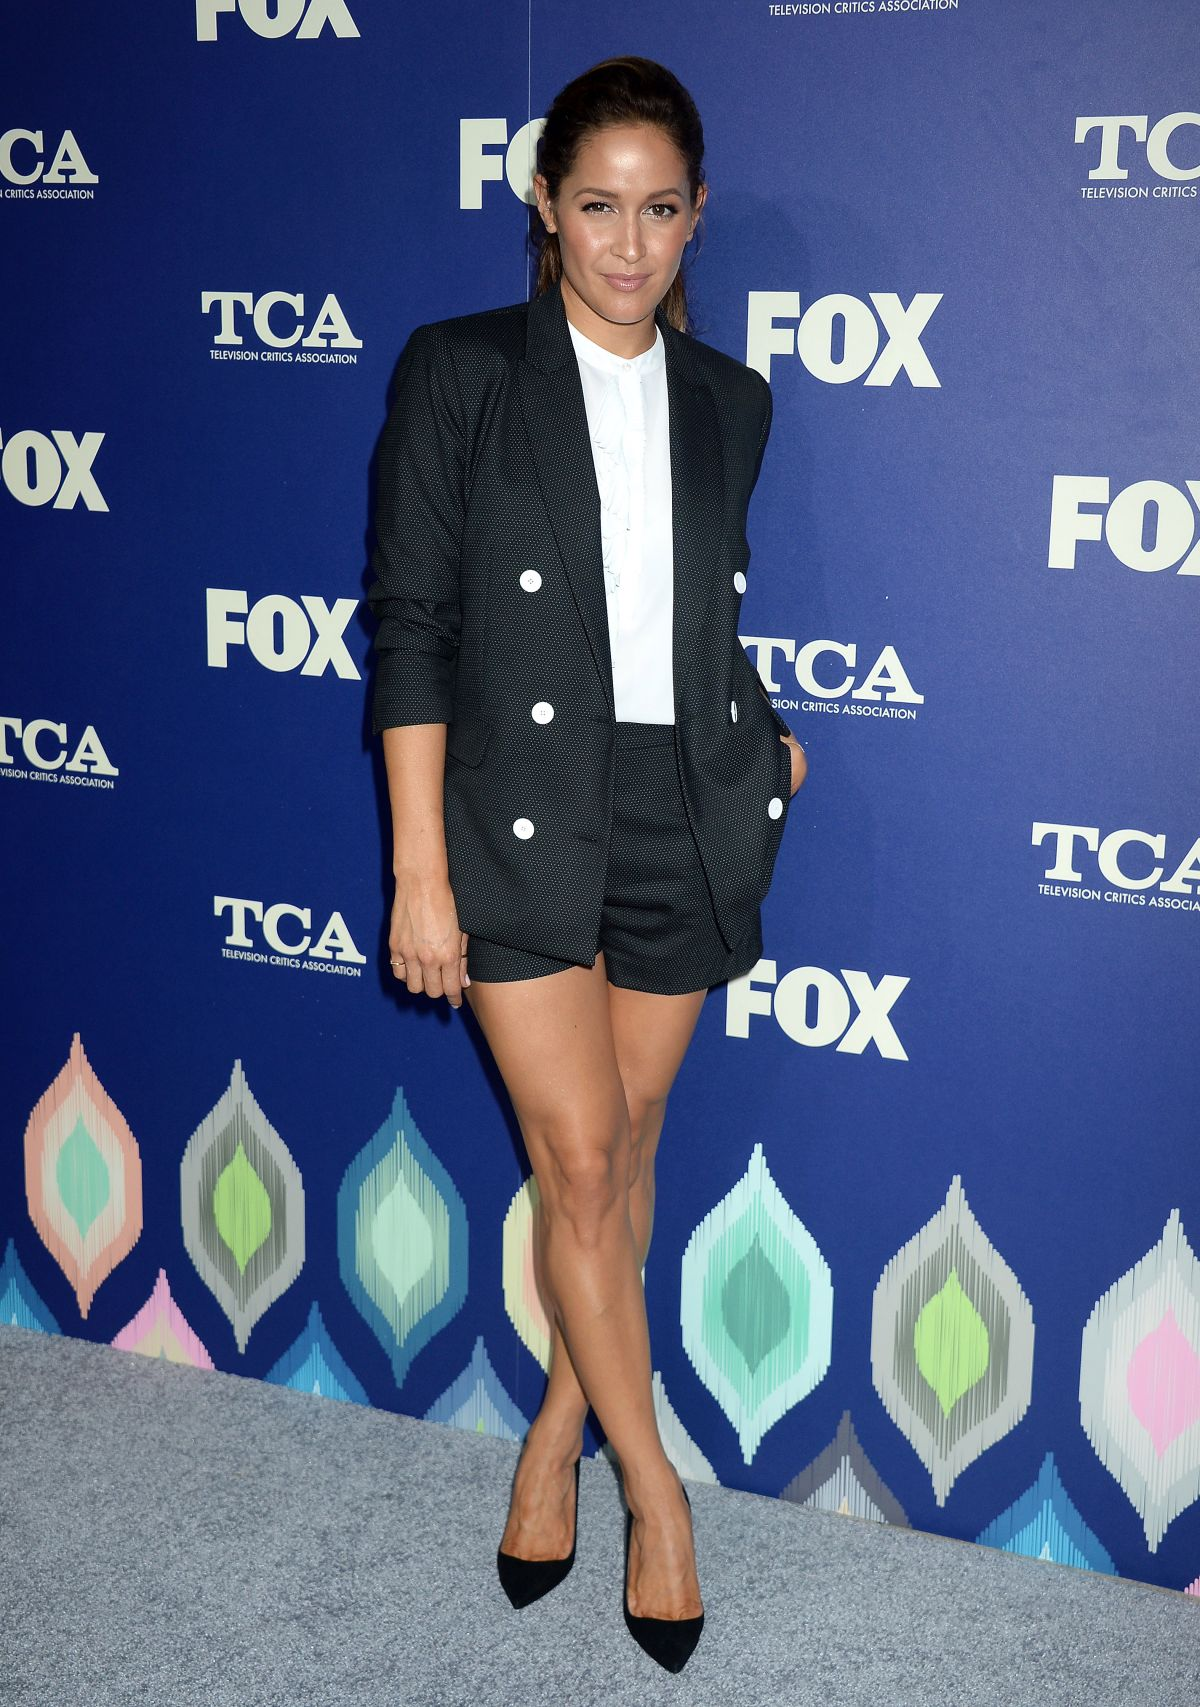 JAINA LEE ORTIZ at Fox Summer TCA All-star Party in West Hollywood 08/08/2016